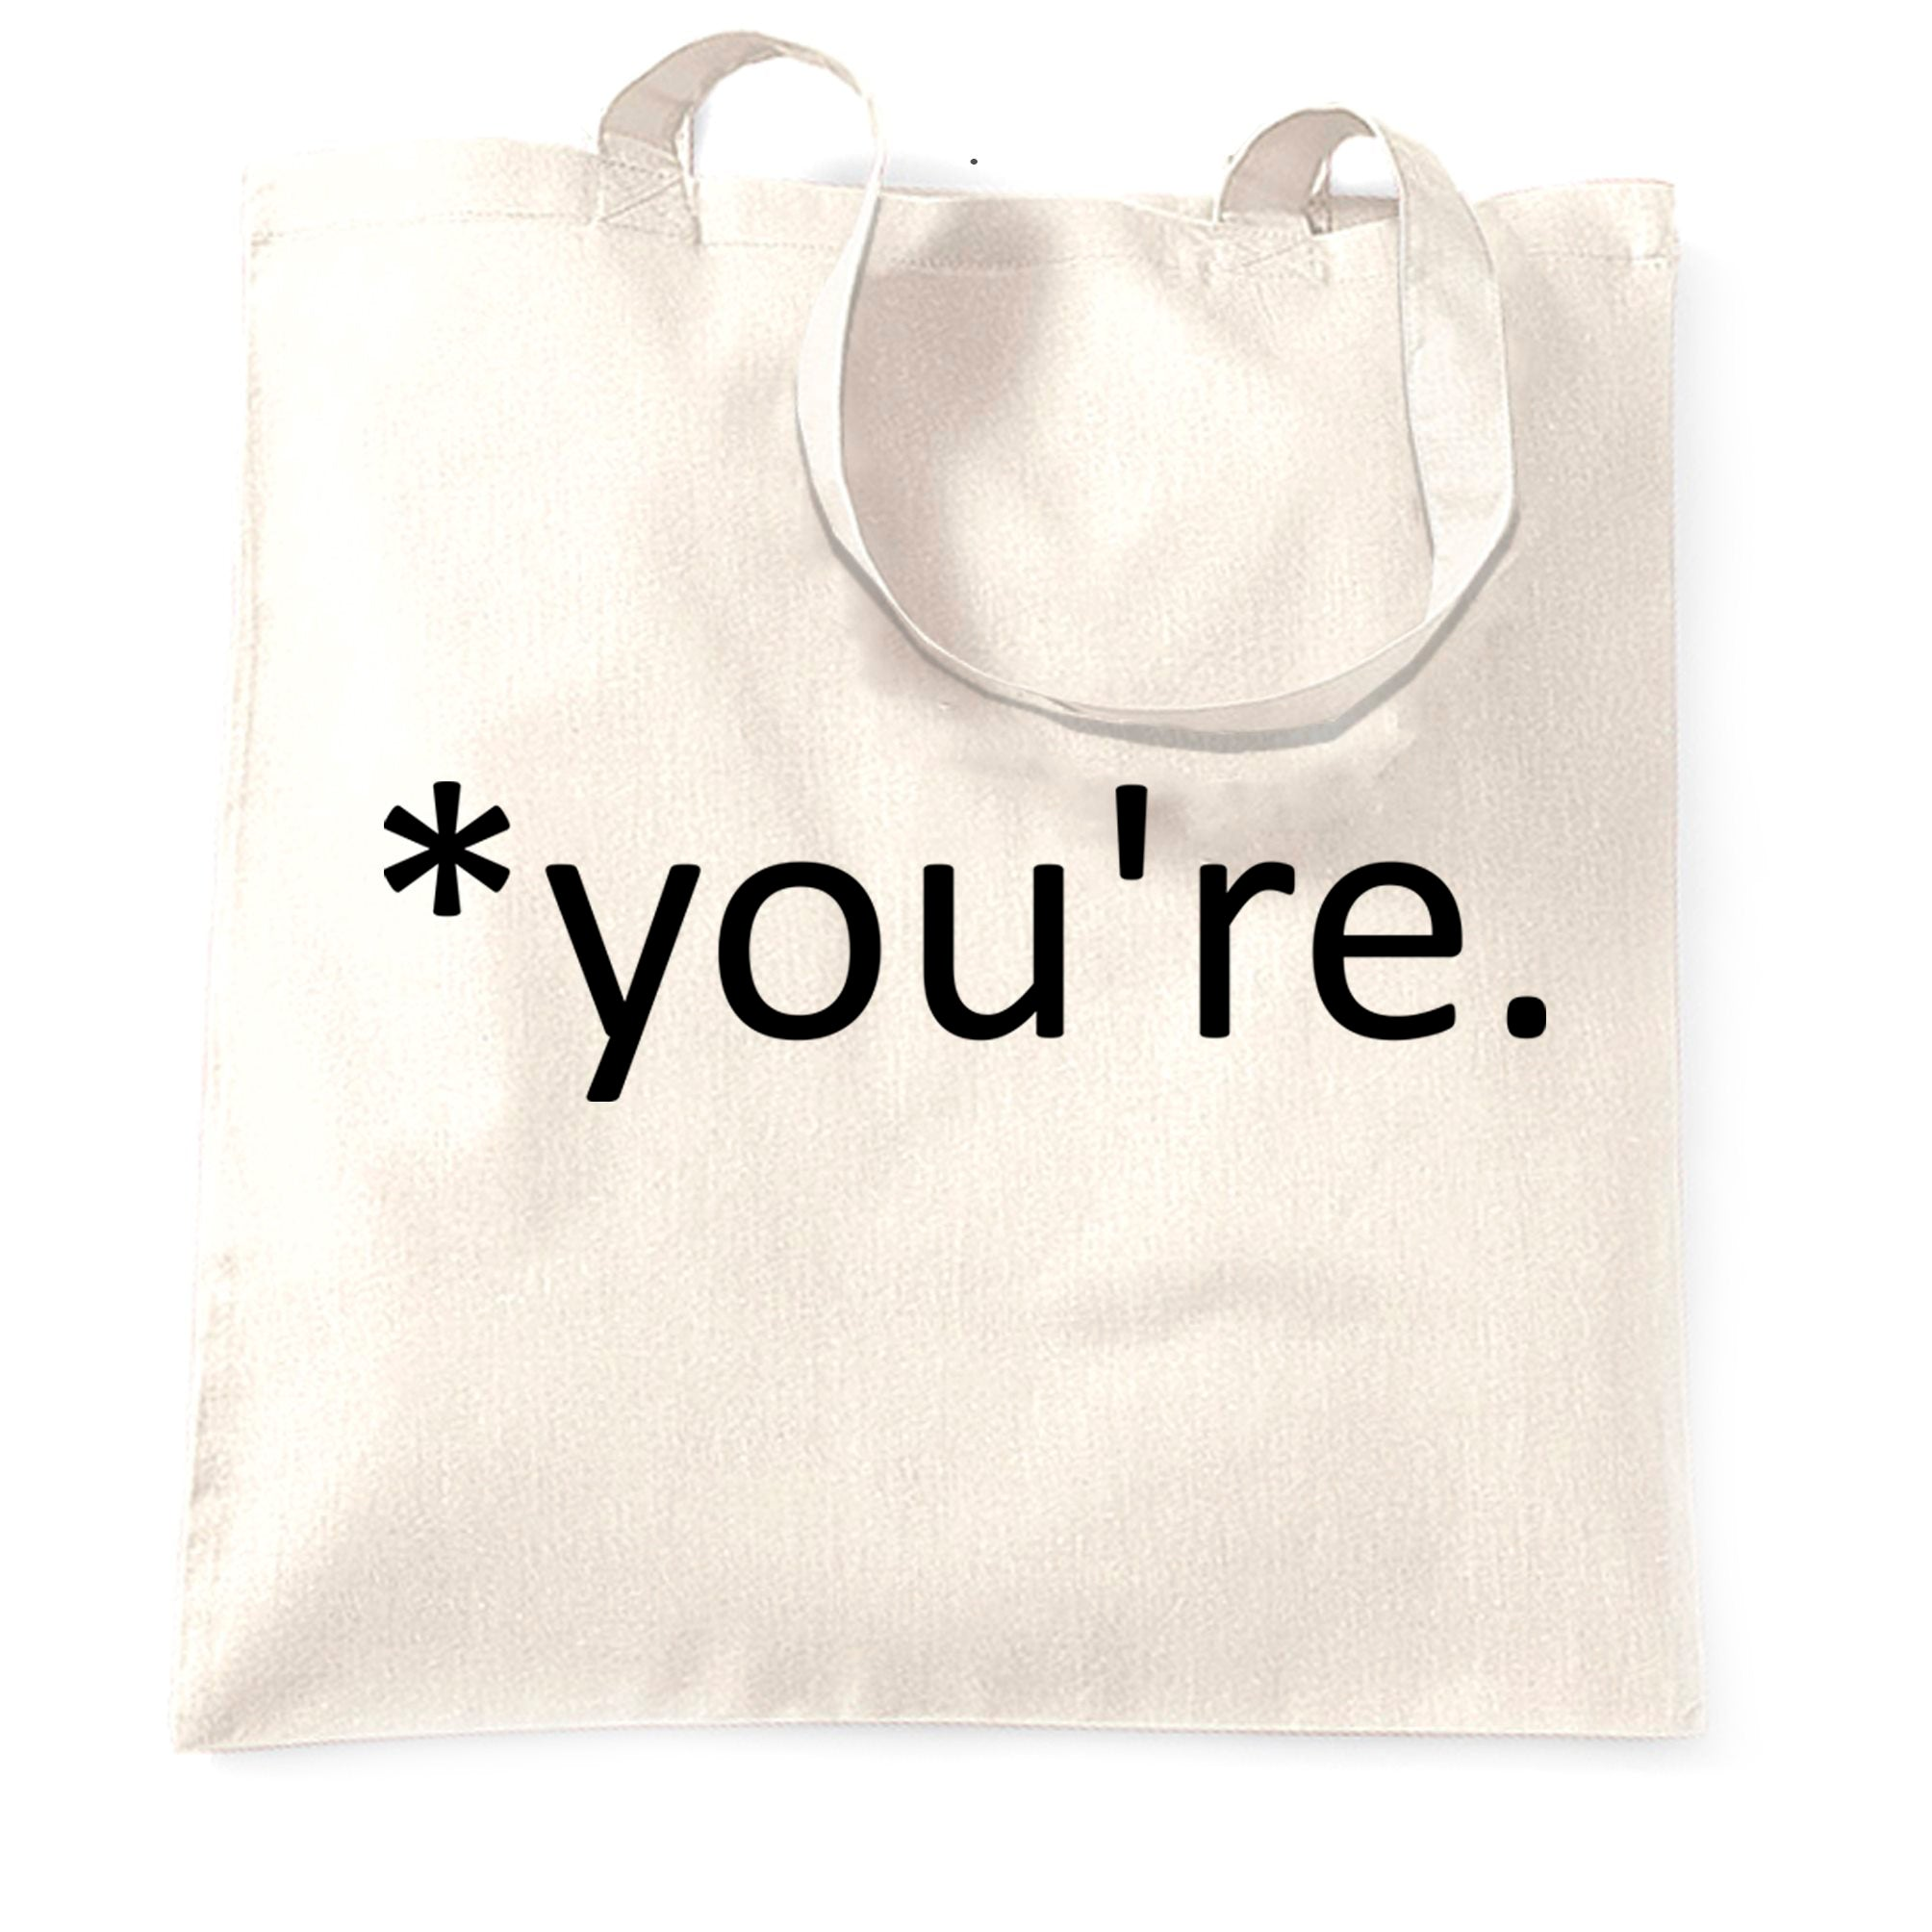 Novelty Tote Bag Some Things Are Better Left Unsaid Funny Joke Drunk Slogan